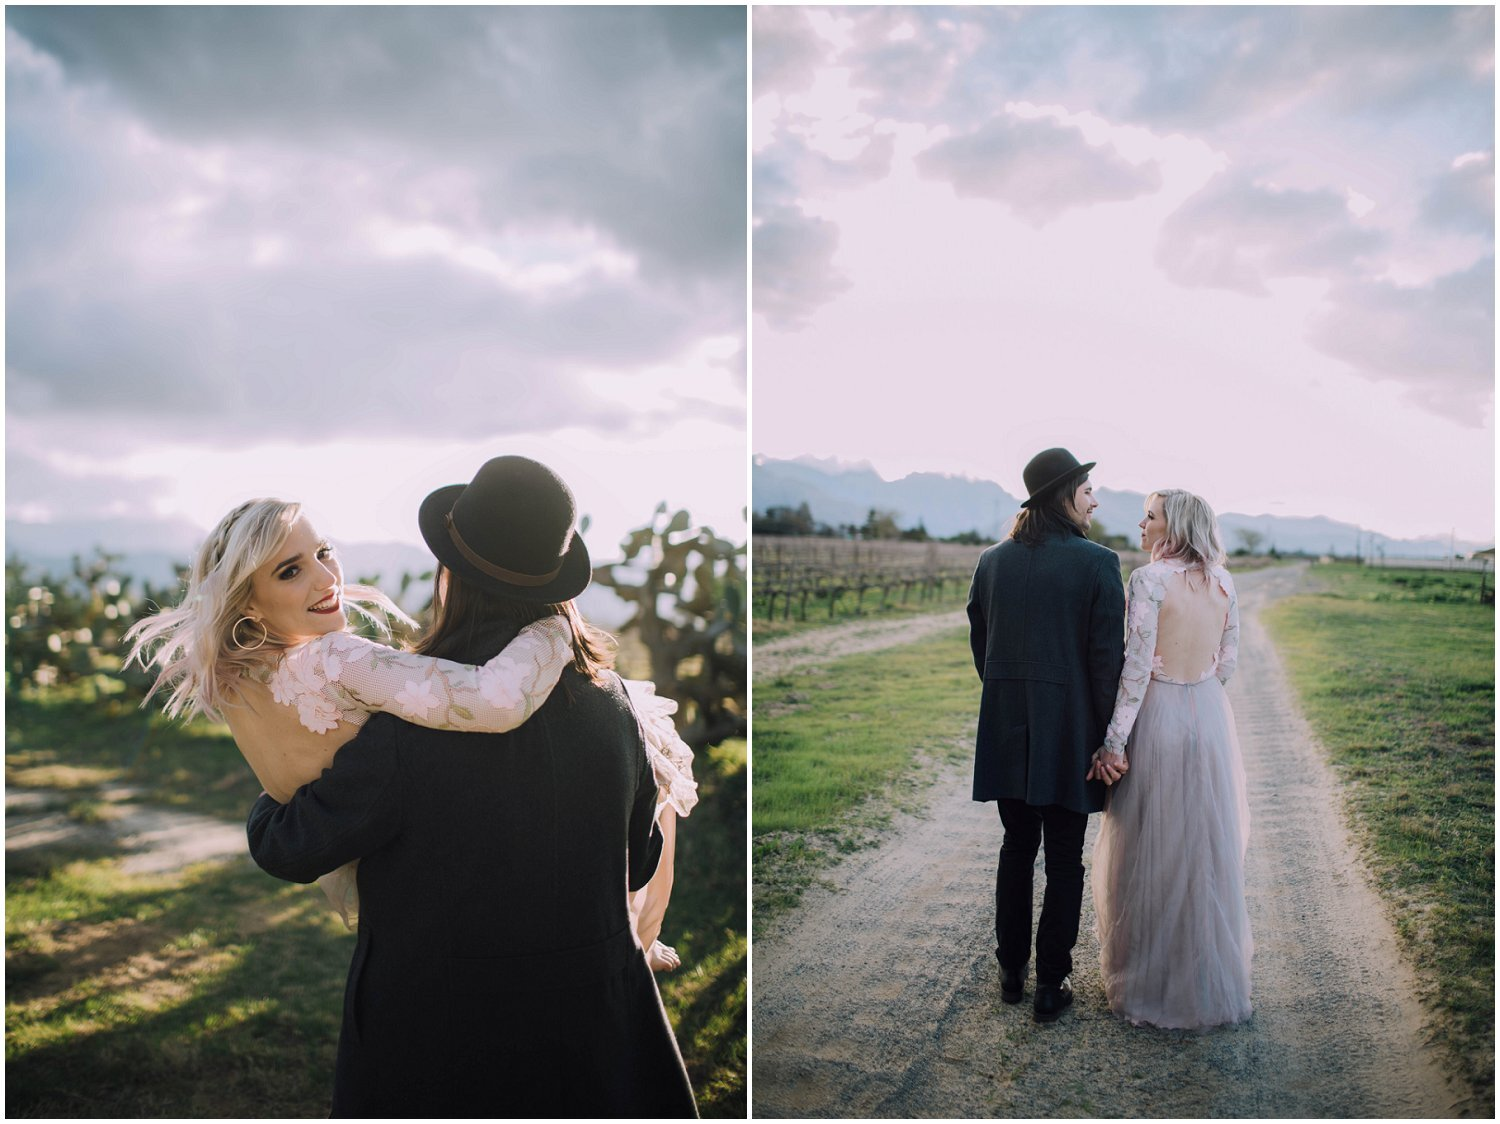 Top Wedding Photographer Cape Town South Africa Artistic Creative Documentary Wedding Photography Rue Kruger_1561.jpg